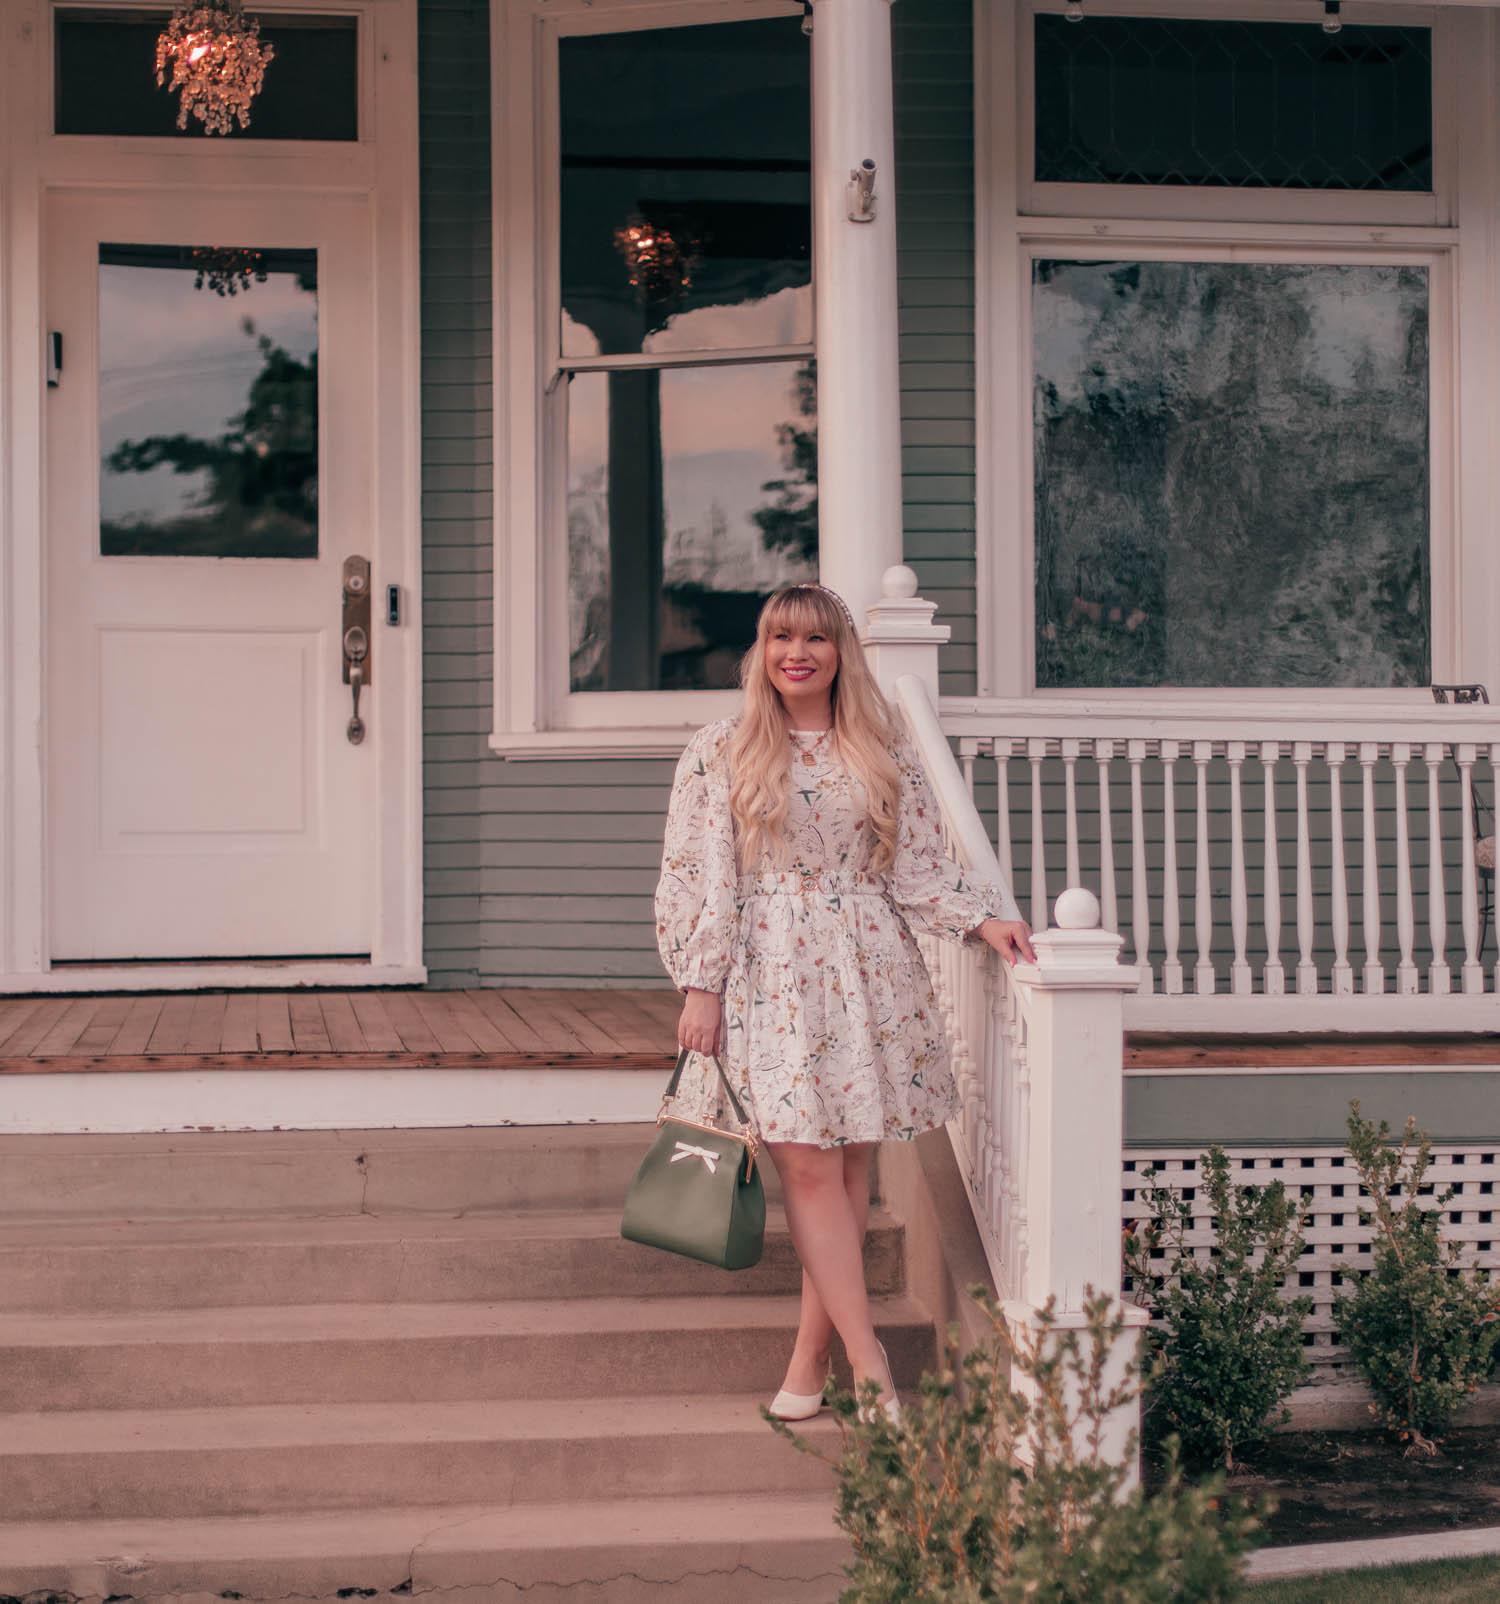 Feminine fashion blogger Elizabeth Hugen of Lizzie in Lace shares her spring 2021 bucket list along with a girly spring outfit idea including this floral Chicwish dress